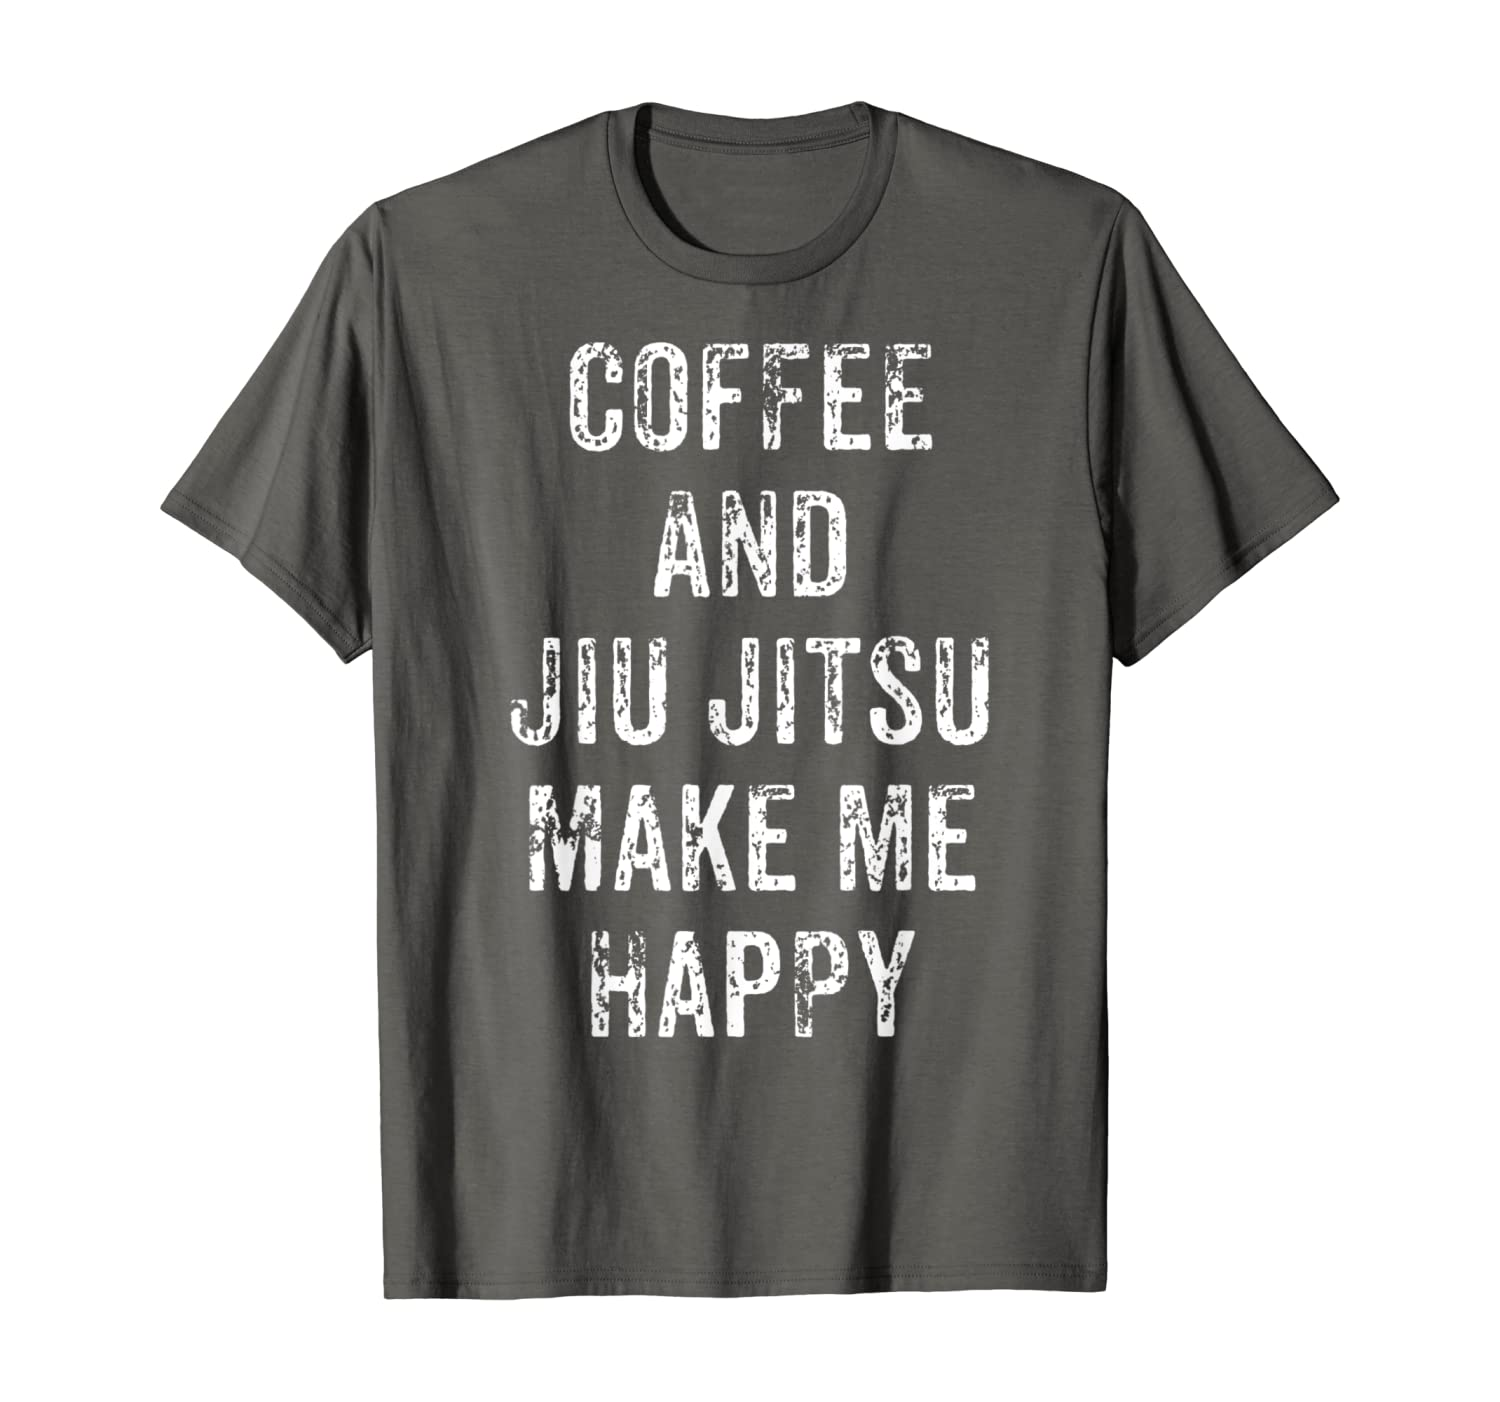 Amazon Com Coffee And Jiu Jitsu Funny Bjj And Mixed Martial Arts Tee Clothing Syfy network live stream or watch syfy network online in hd quality using totalsportek web or apps syfy series live streaming also available. amazon com